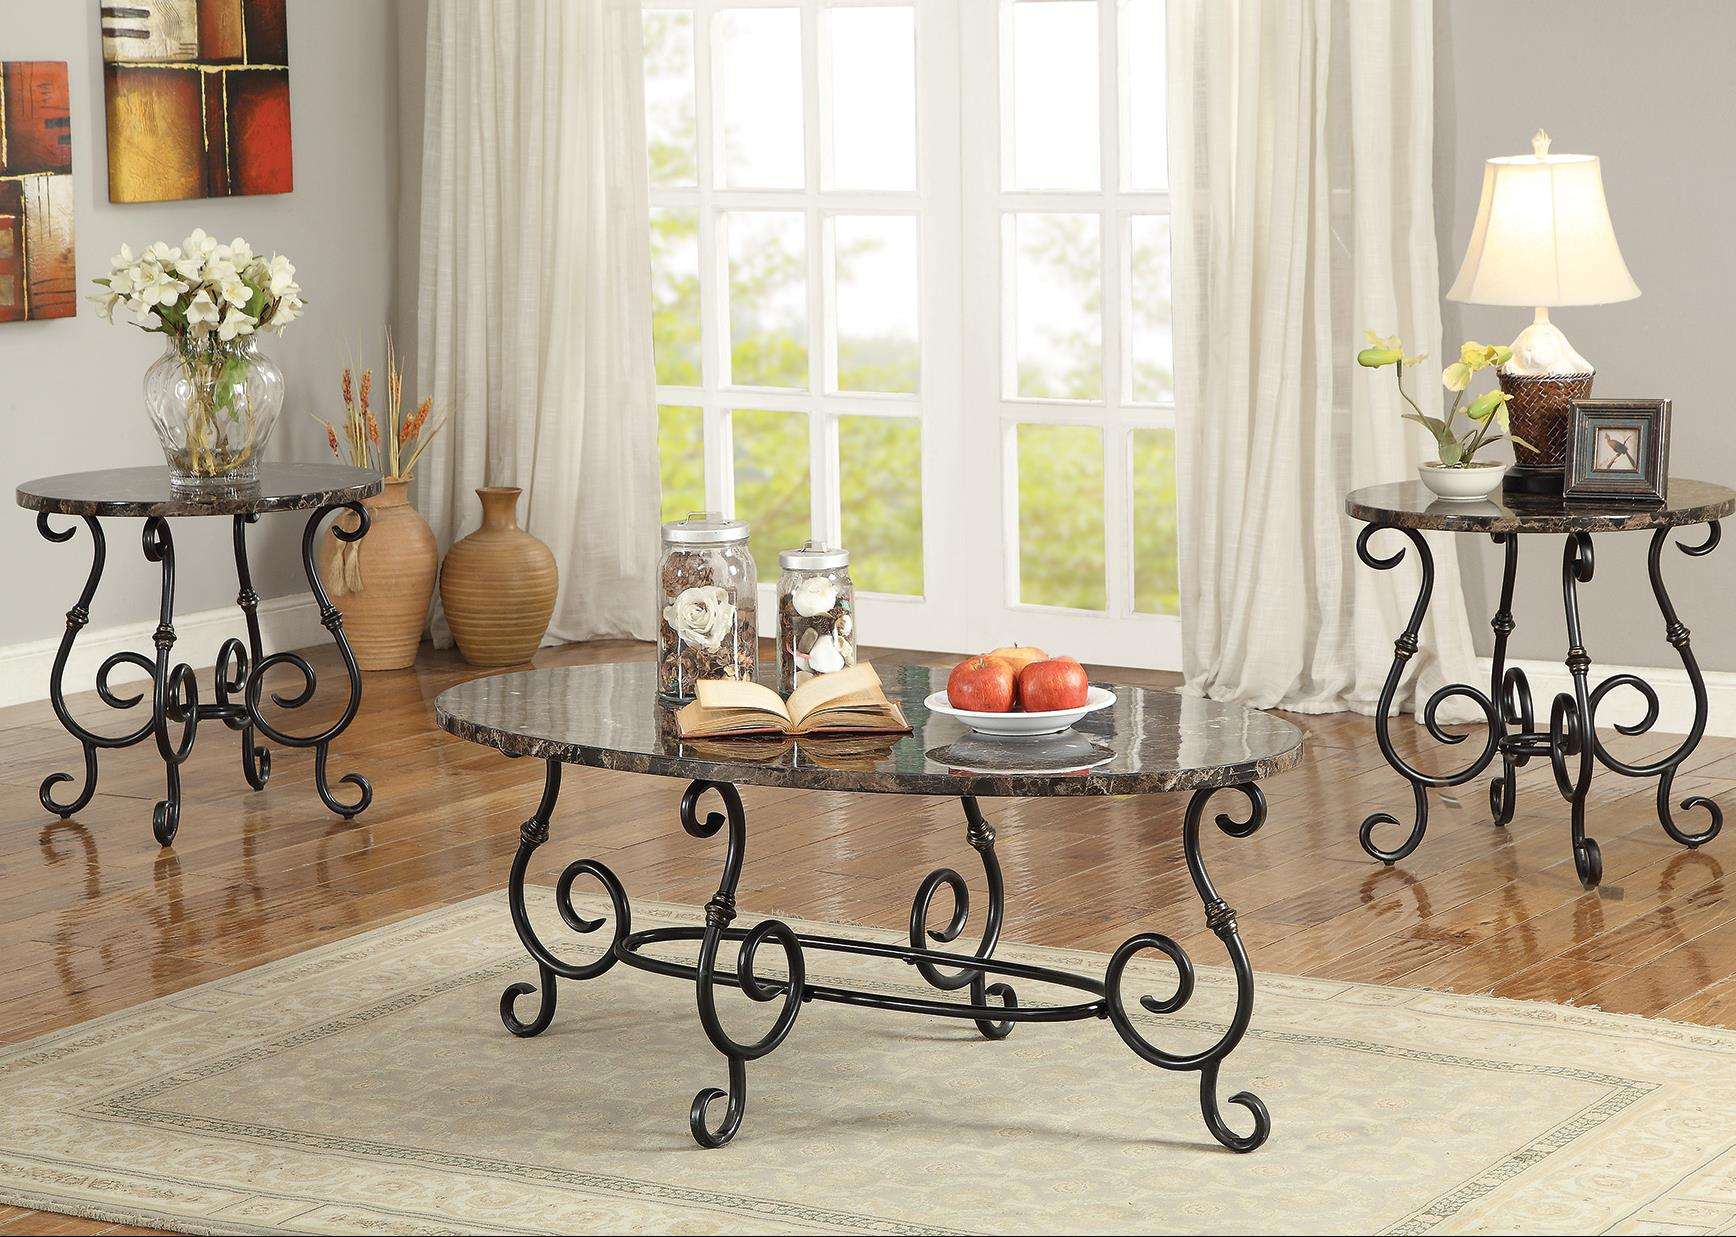 Coaster Occasional Table Sets 3 Piece Accent Table Set - Item Number: 700187